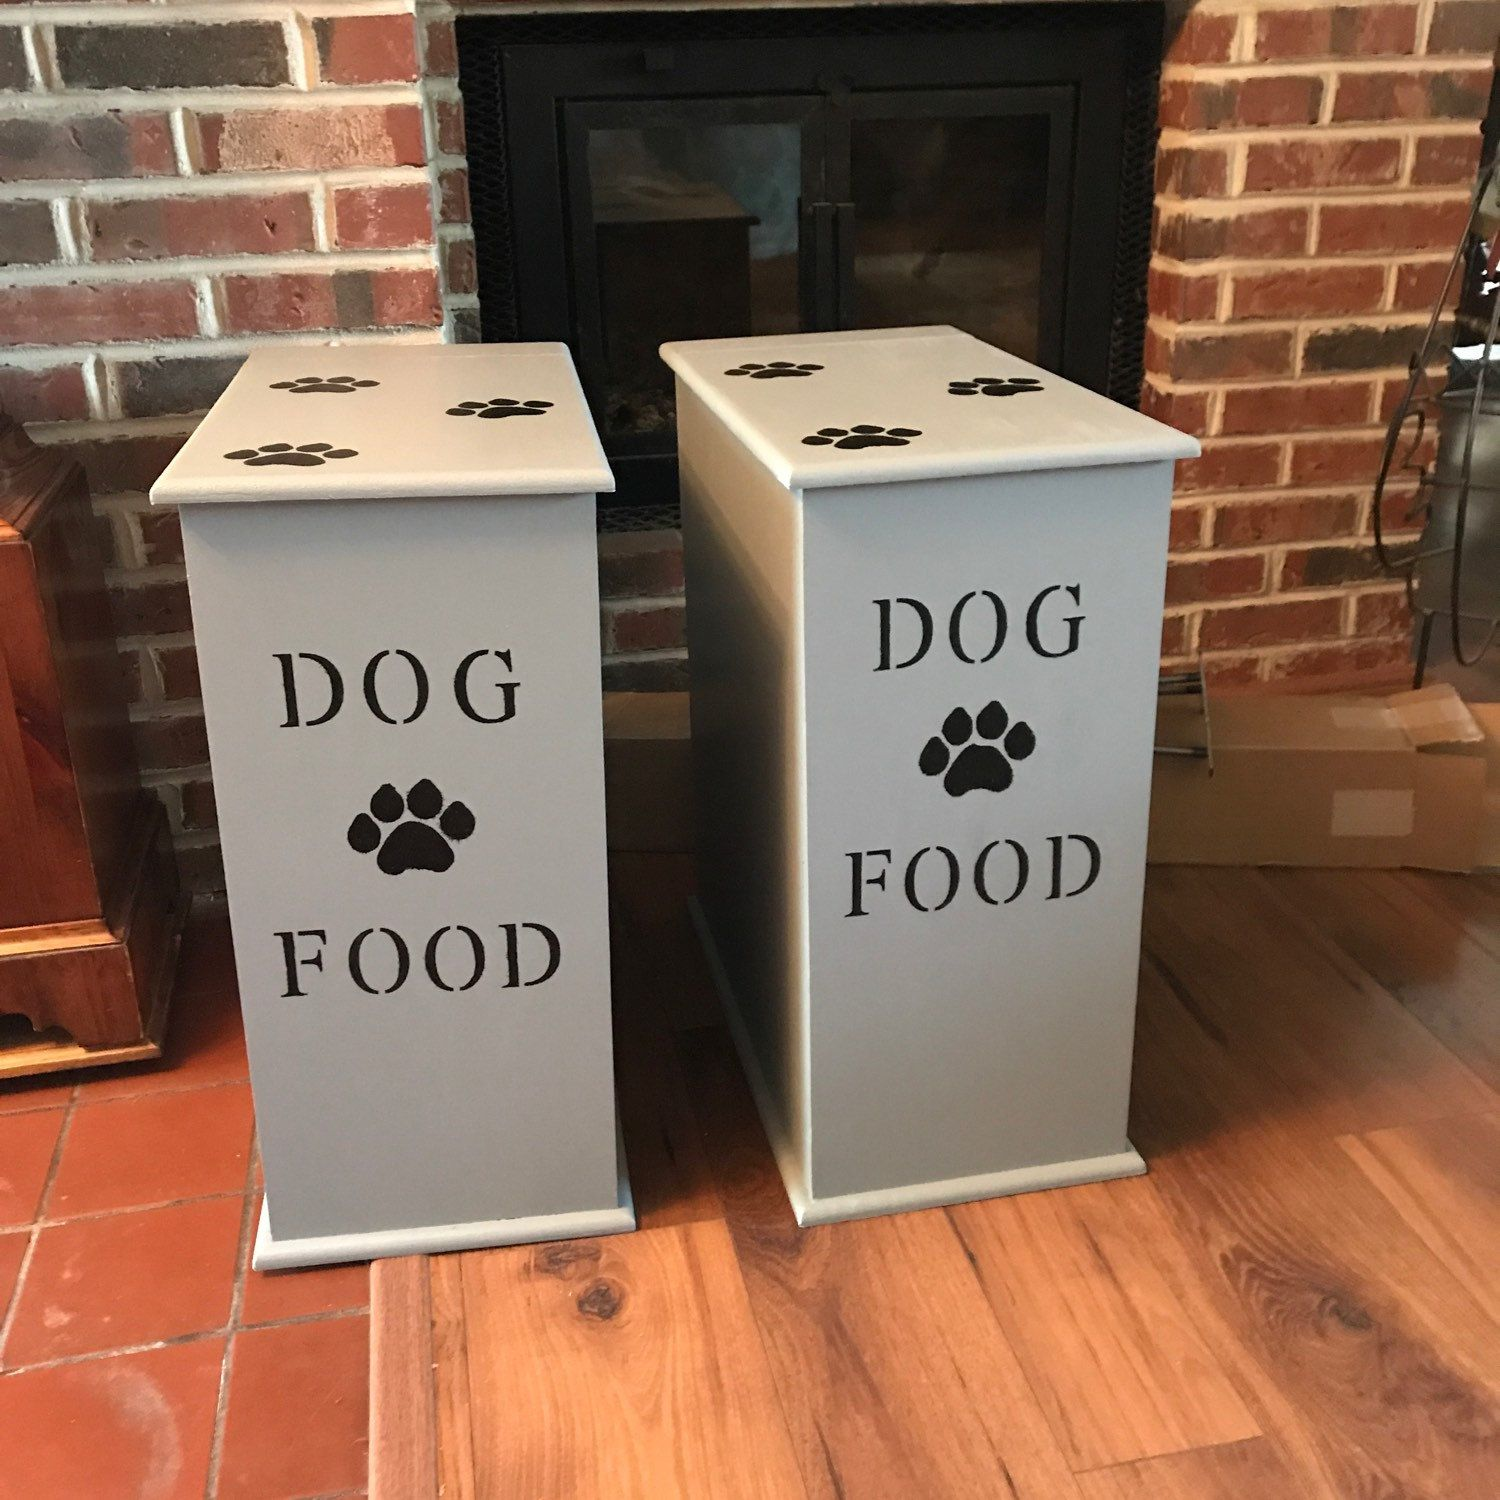 Dog Food Cabinet Personalized Dog Gifts For Owners Dog Adoption